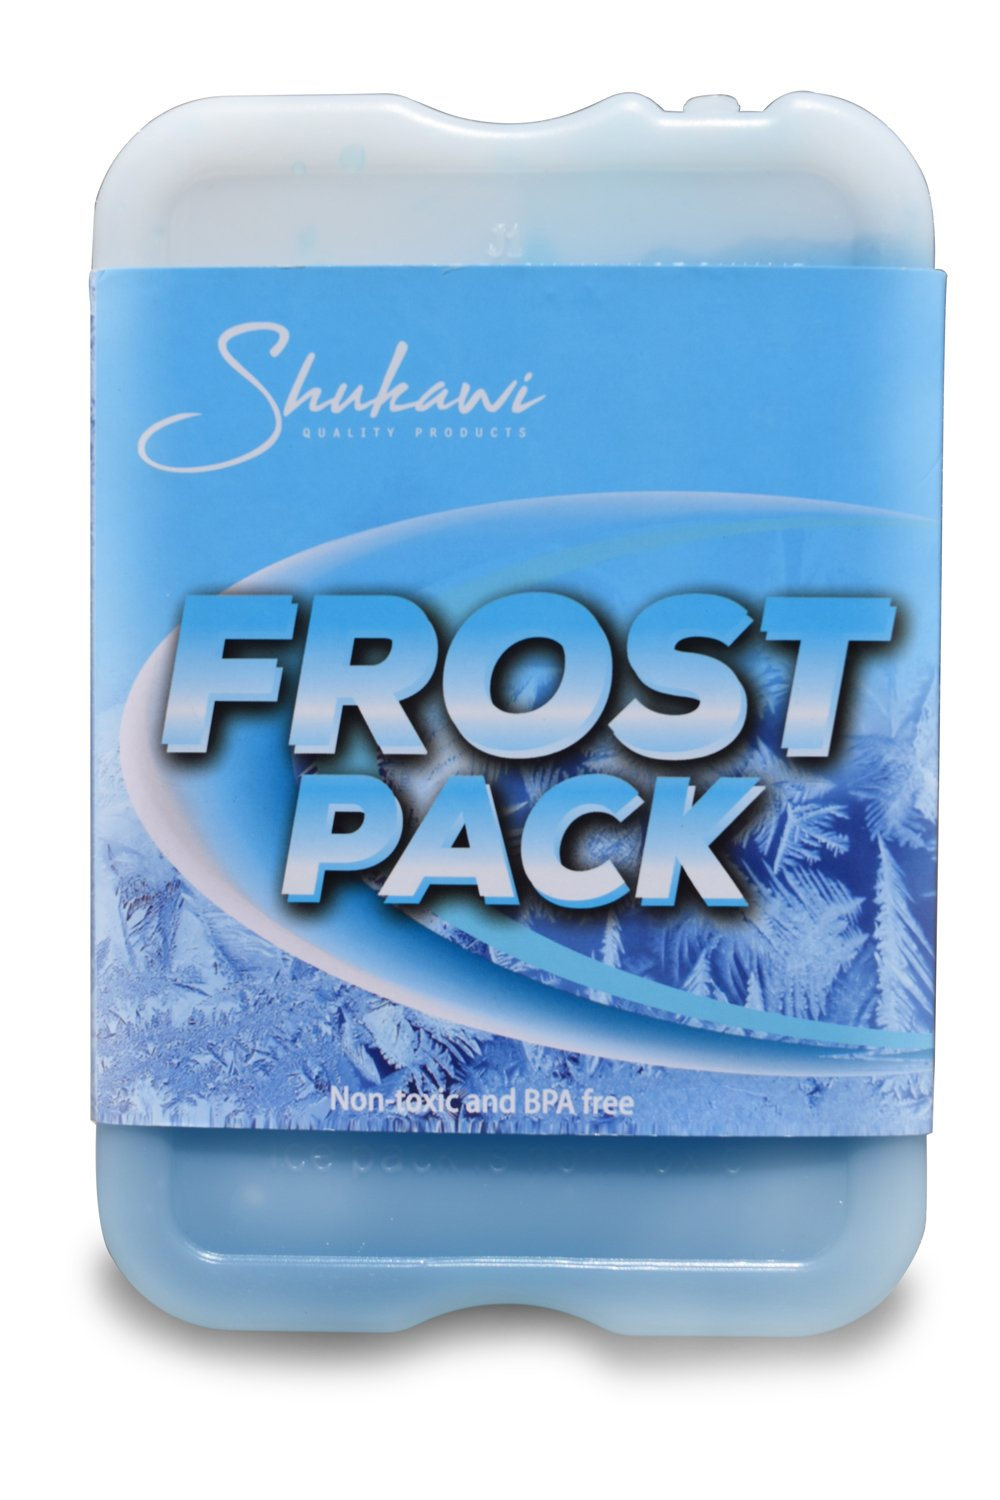 Cold Fresh Slim Ice Packs - Thin Long Lasting Reusable Ice Packs, Great Food Saver used in Lunch Boxes & Coolers Storing Food, Keeps Your Lunch Chilled, and Tasty (Set of 4) Frost Packs by Shukawi Quality Products (Image #3)